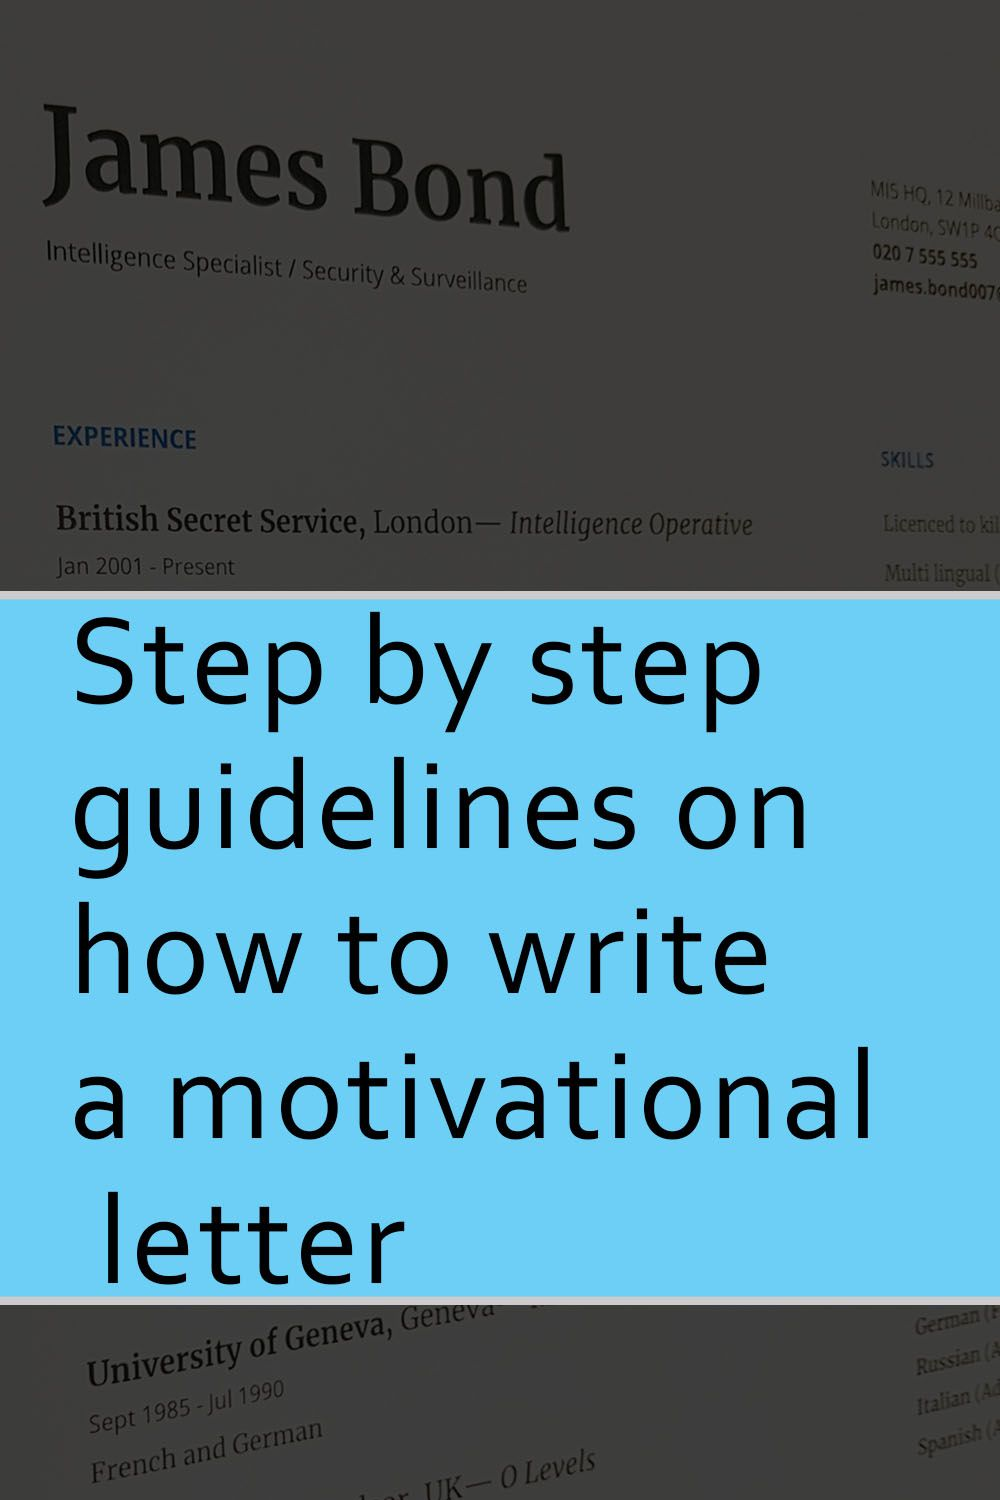 step by step guidelines on how to write a motivational